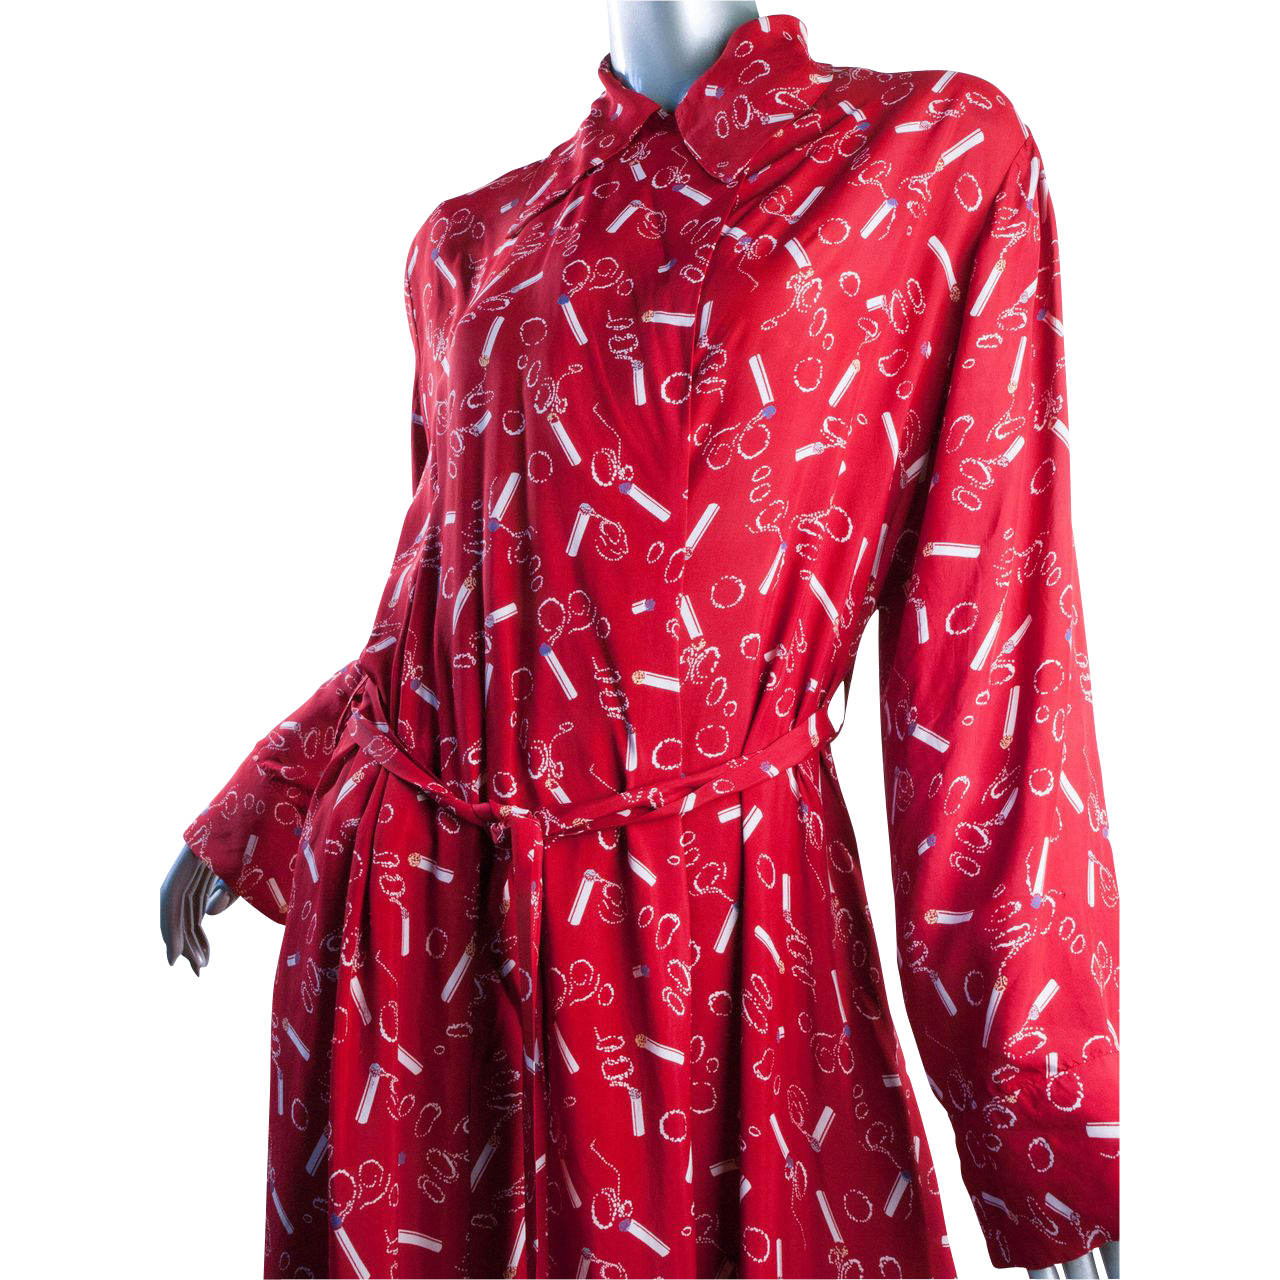 1940s Rayon Dress Smoking Cigarette Fab Red Great Size